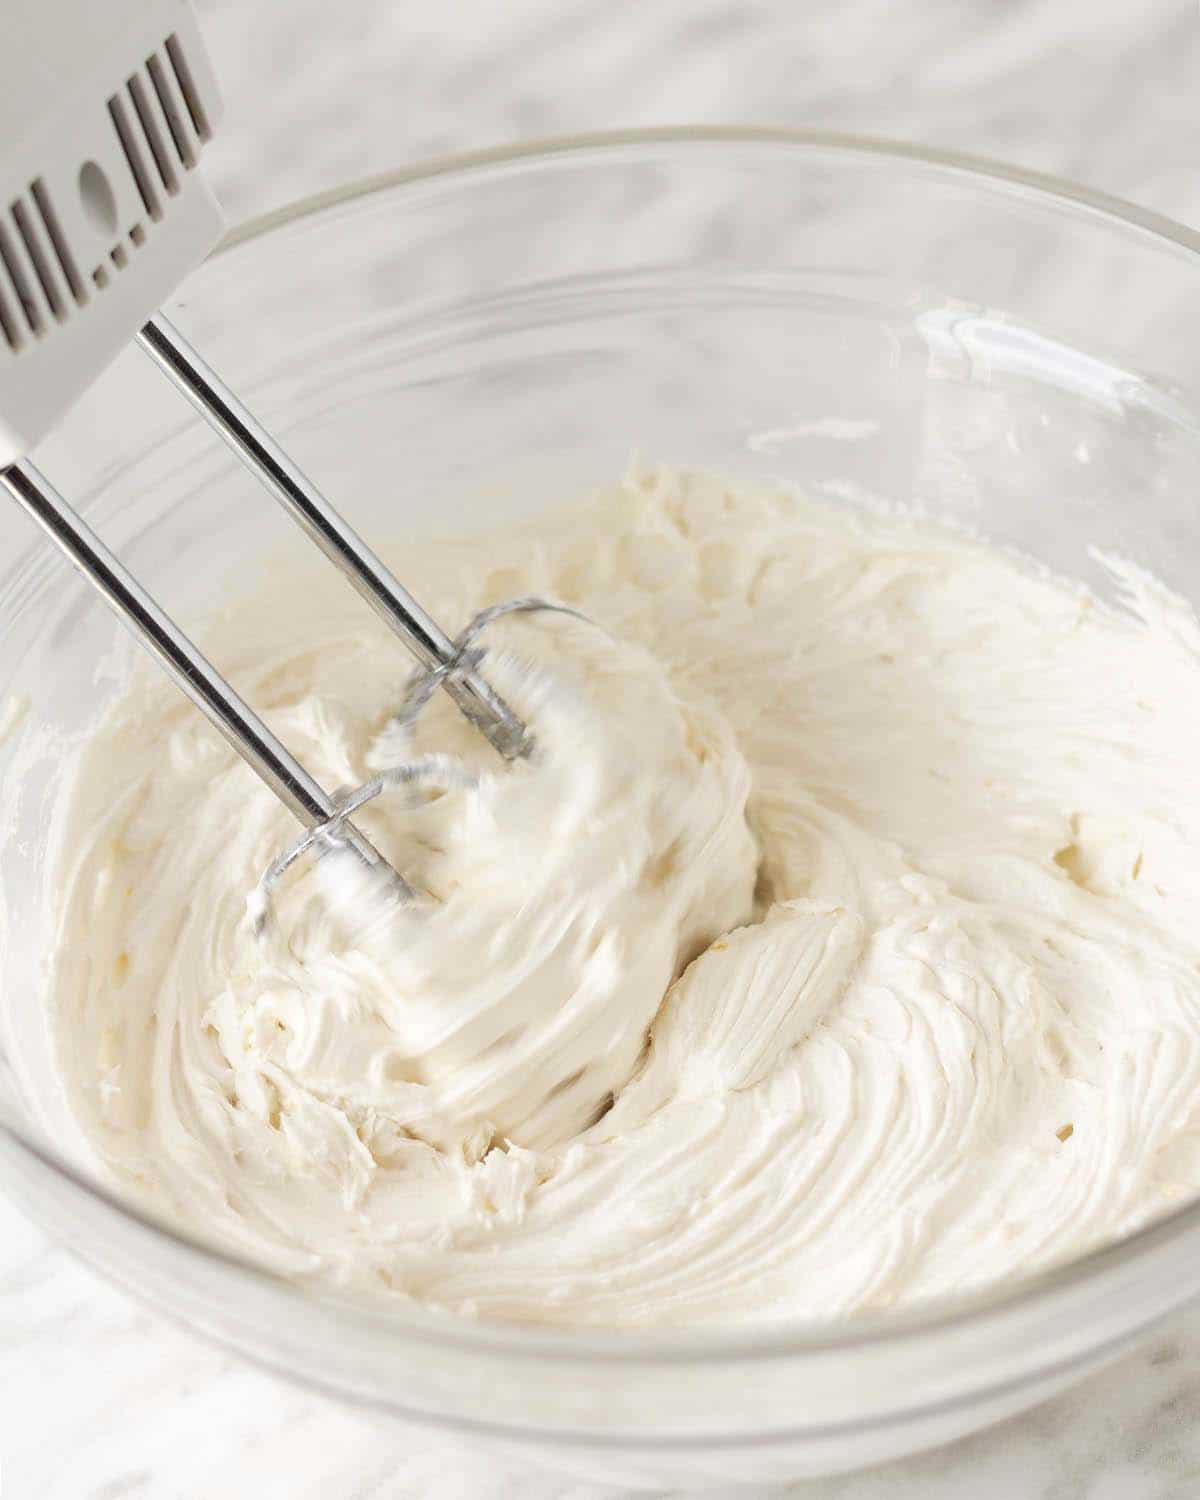 Image shows an electric beater whipping vegan lemon frosting in a glass bowl.